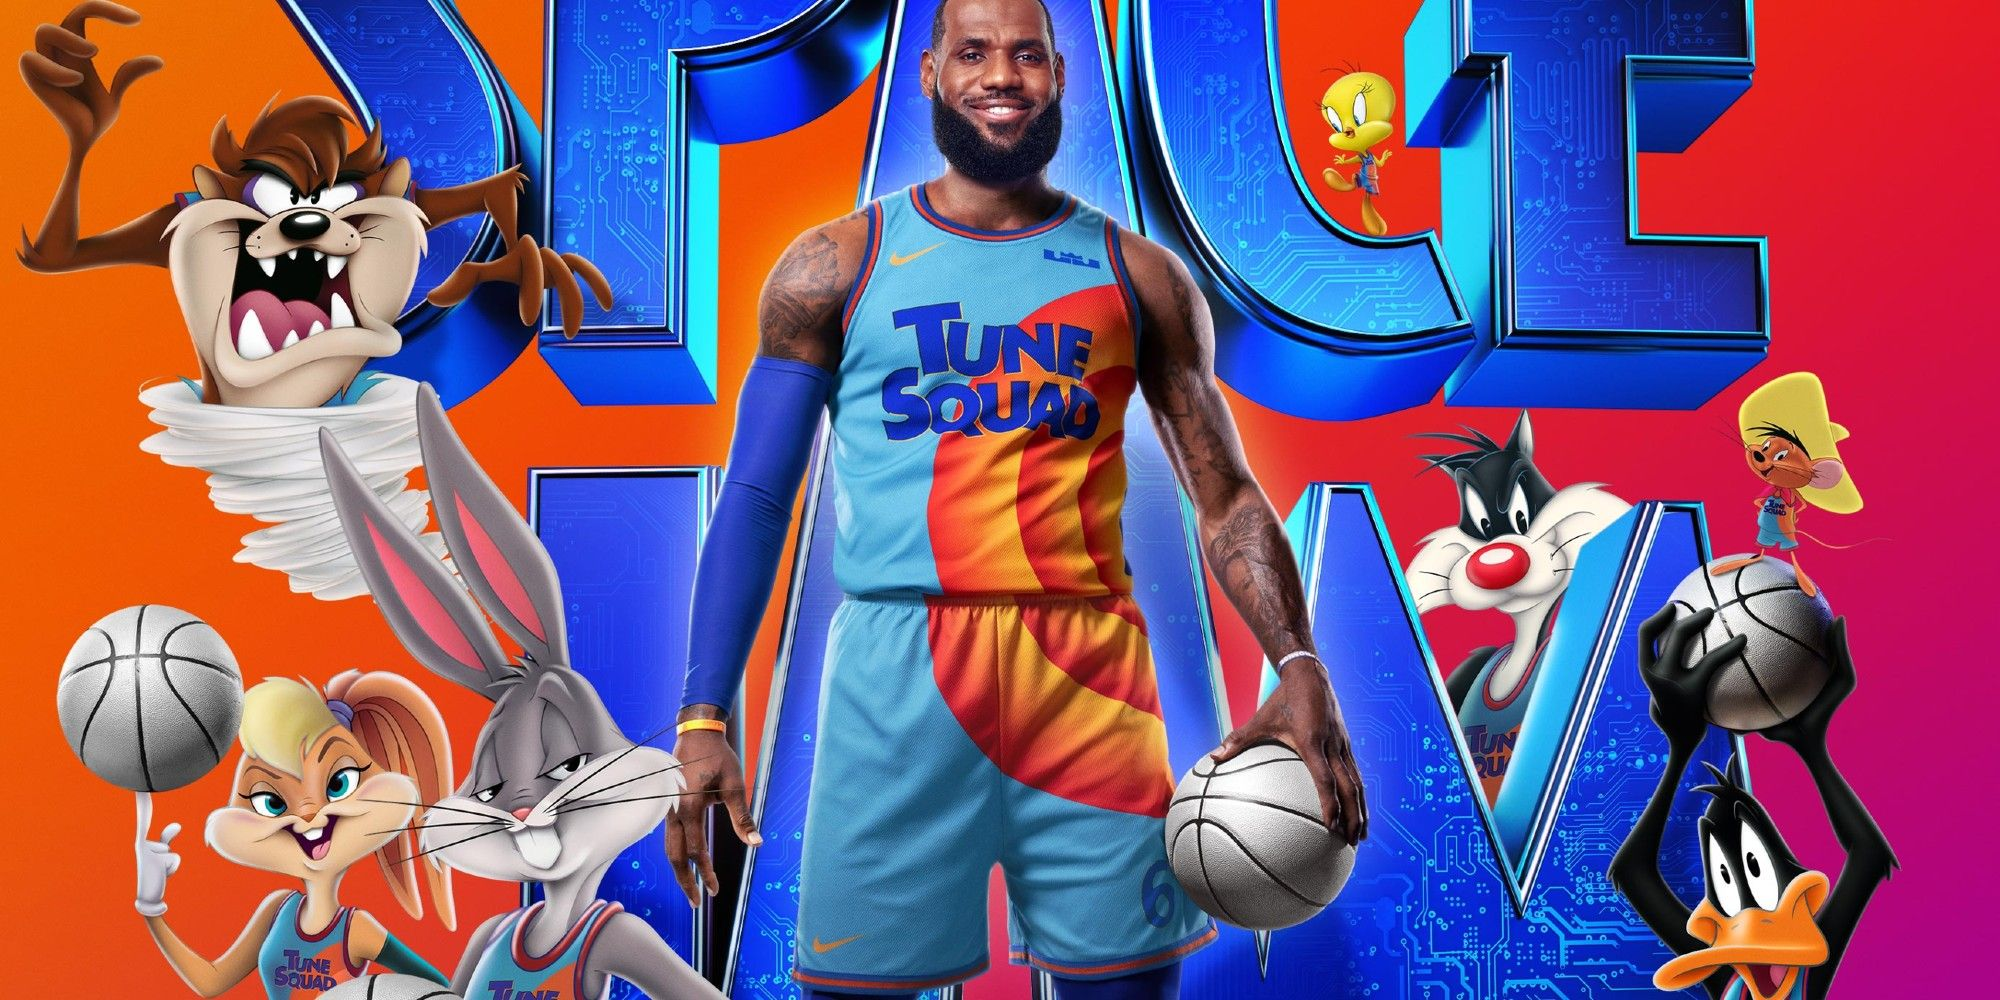 Watch Space Jam 2: A New Legacy (2021) Full HD Movie Online For Free